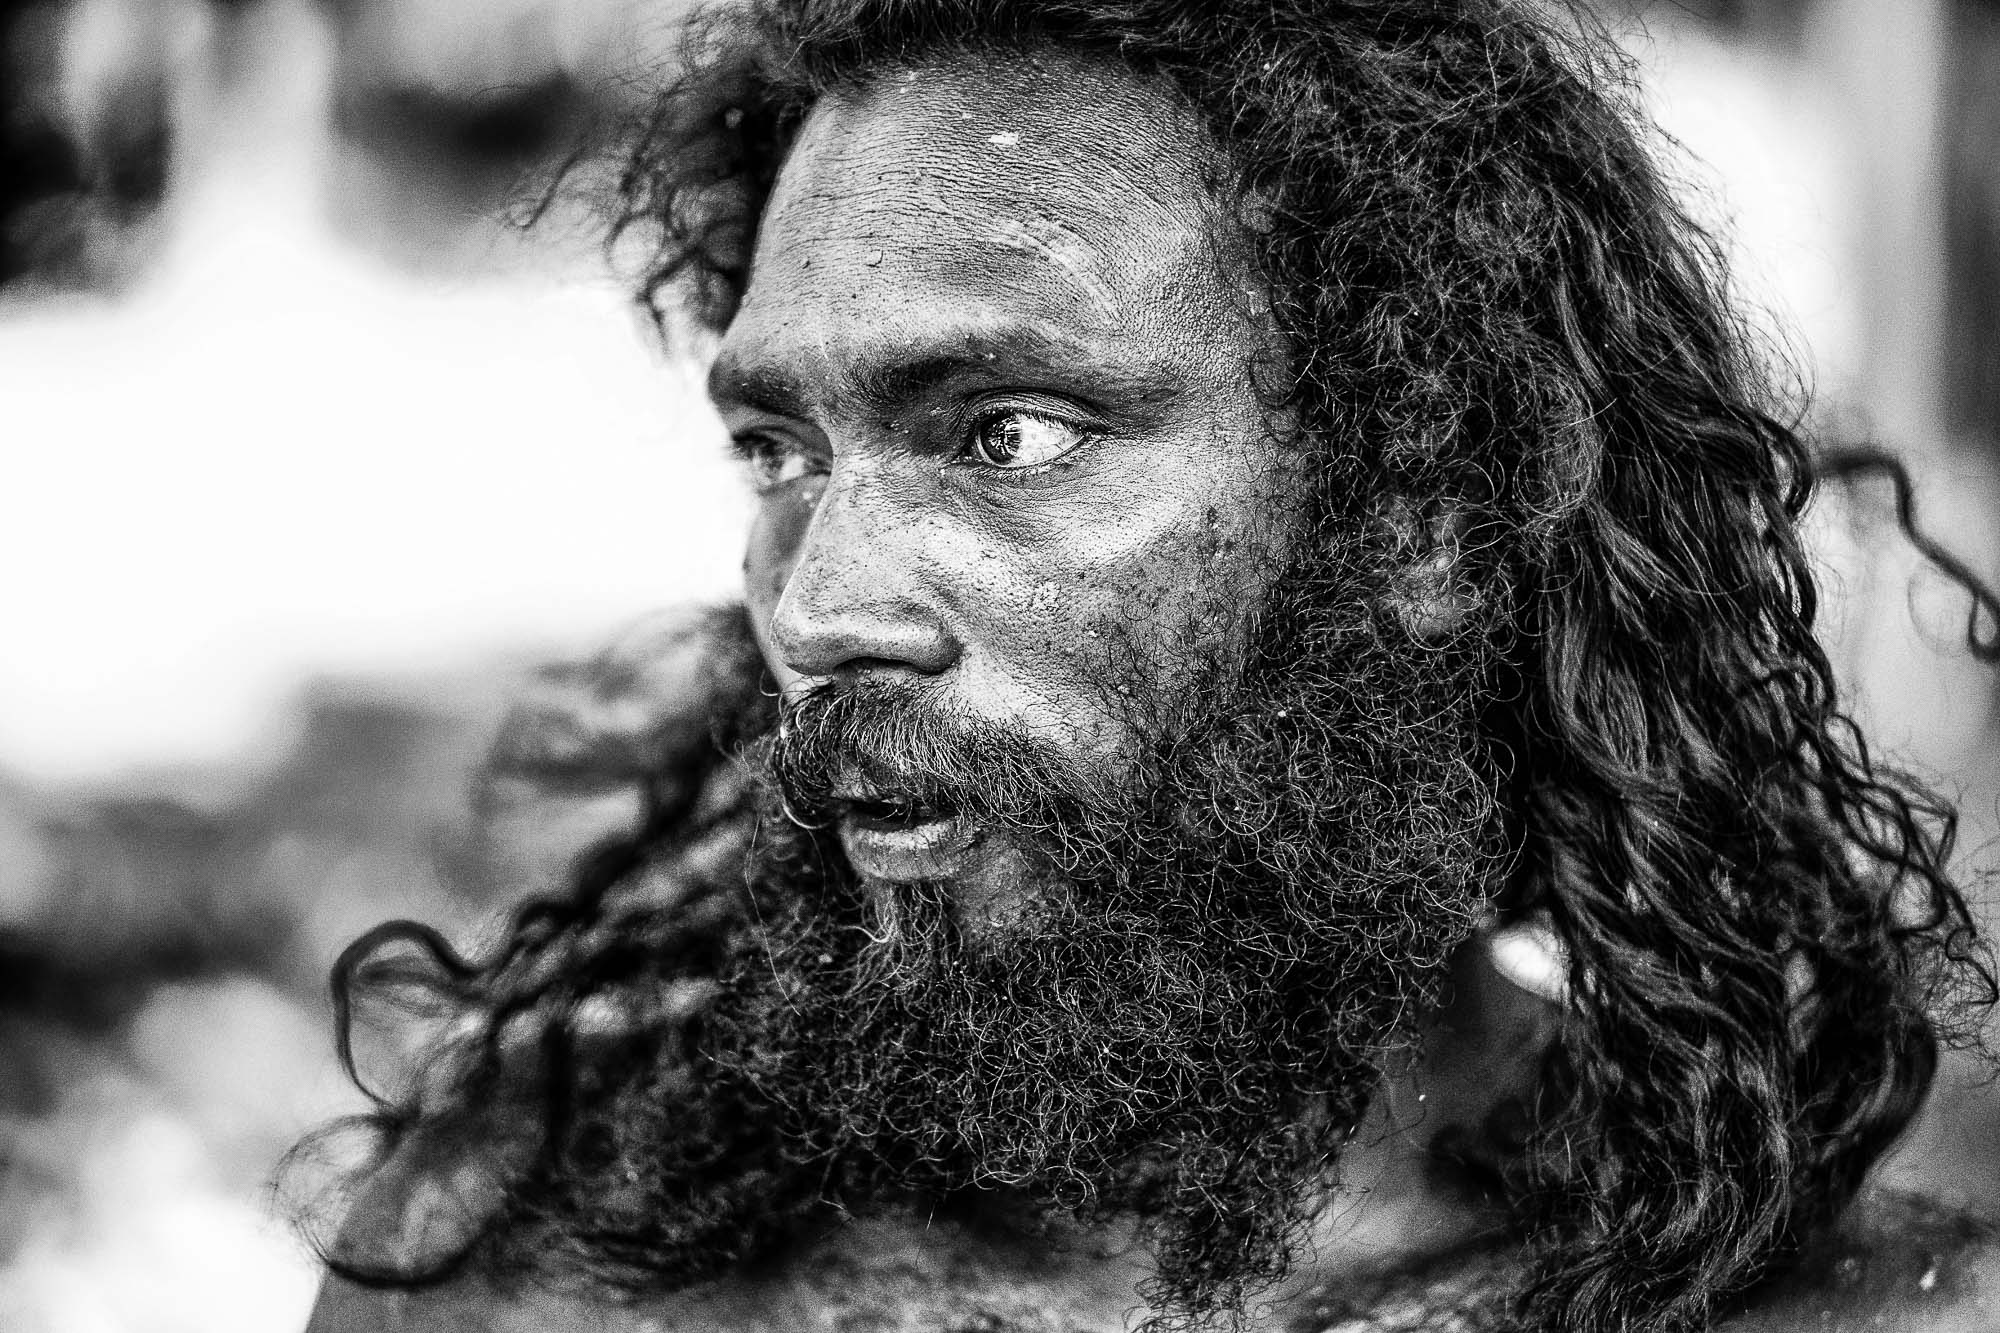 Veddas Sri Lanka man indigenous beard black white Commercial Editorial Portraiture Documentary Photographer fujifilm Director Singapore Jose Jeuland photography fashion